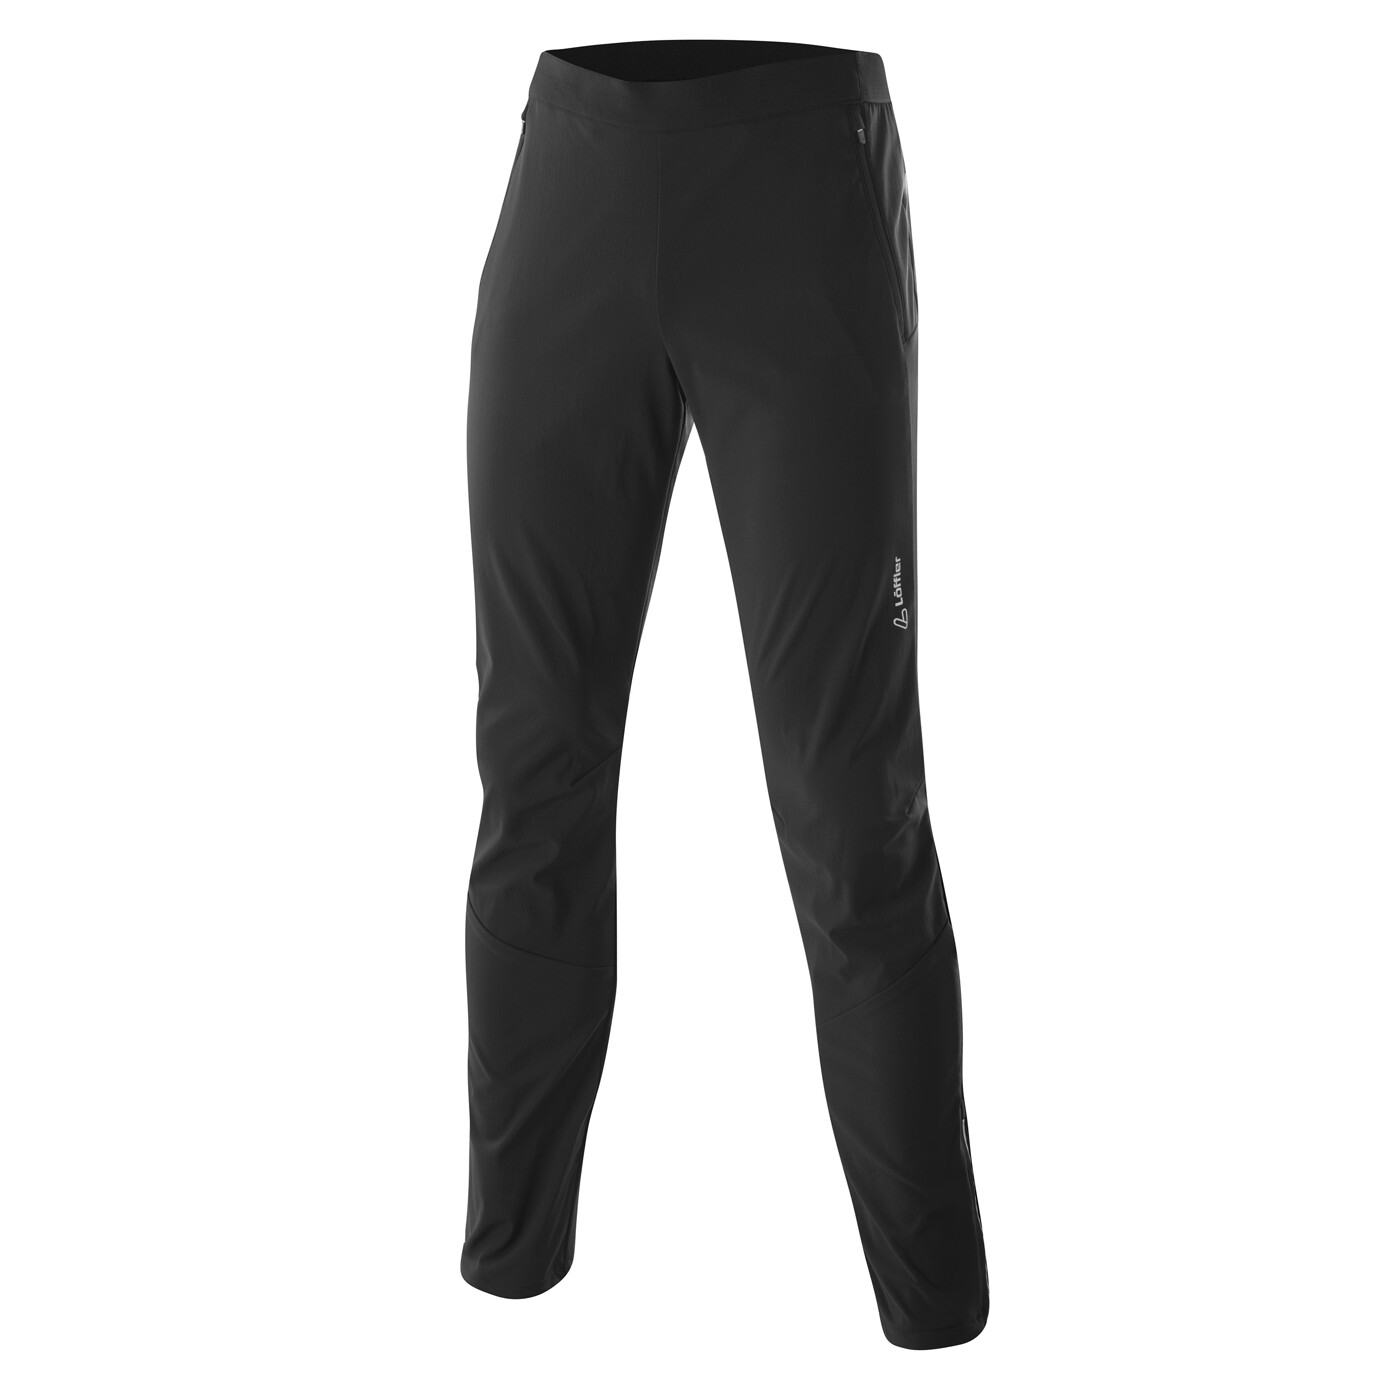 LÖFFLER M PANTS EVO AS - Herren